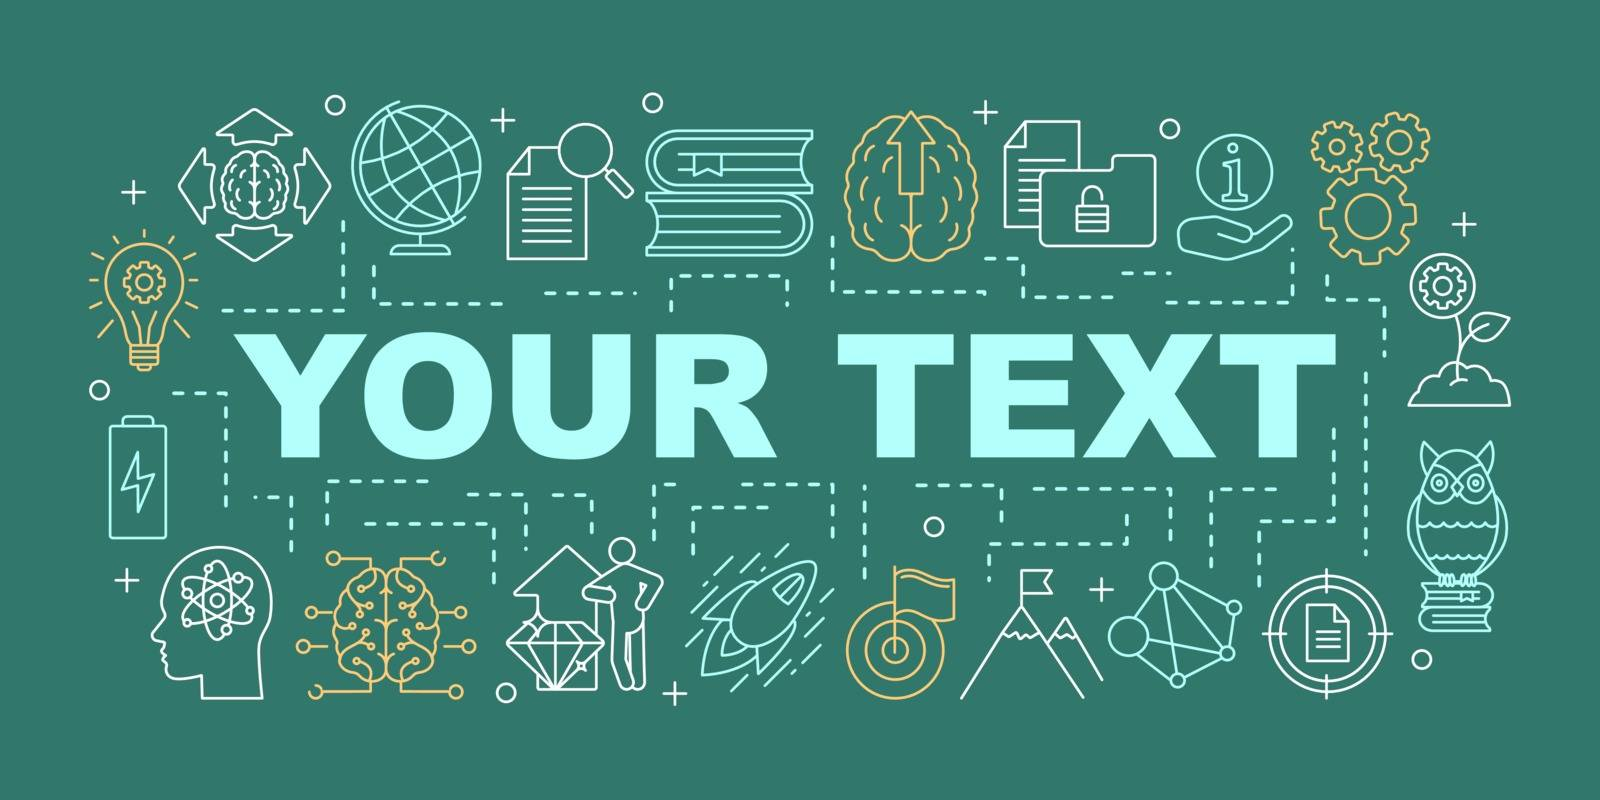 Knowledge word concepts banner. Solution searching. Presentation, website. Brainstorming. Ideas generation. Isolated lettering typography idea with linear icons. Vector outline illustration